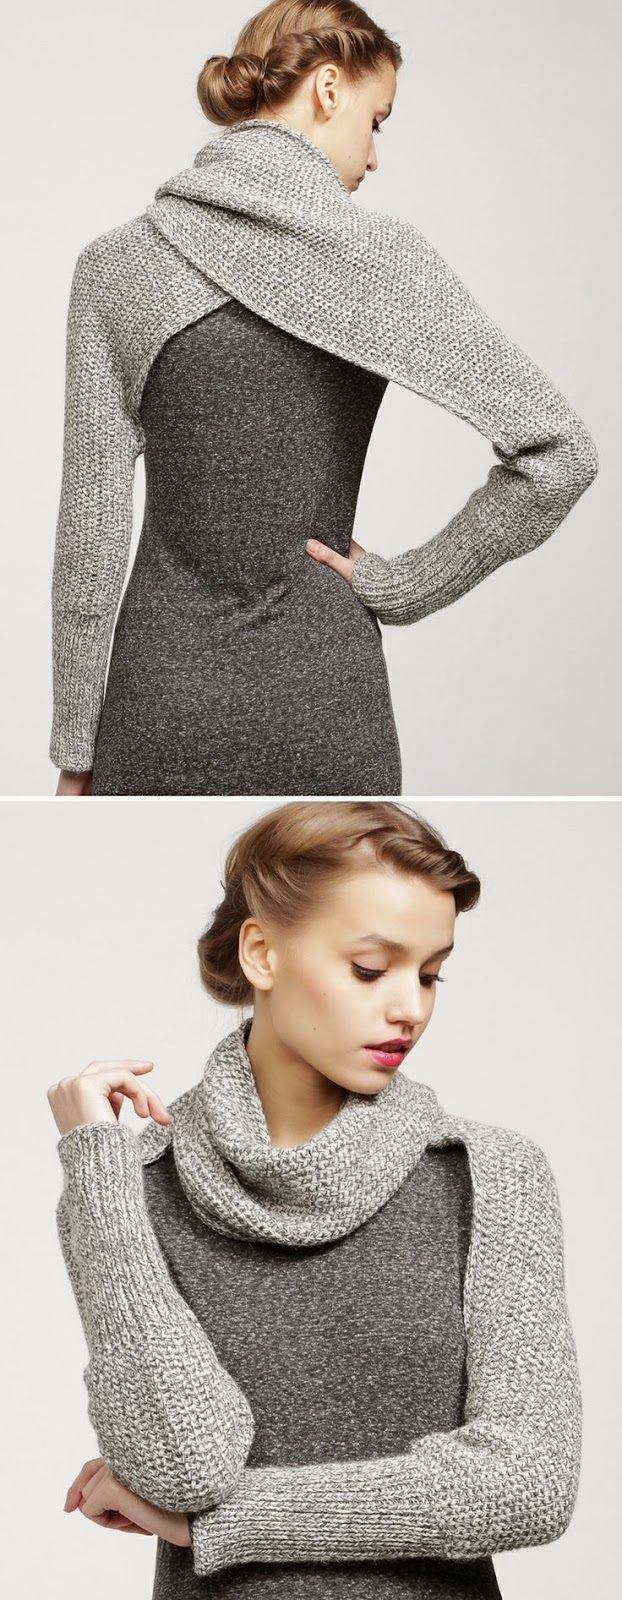 Sleeve Wrap Sweater....this makes me wish I could knit! - 'Be My Baby' Kit from woolandthegang.com WANT TO KNIT THIS SO BADLY